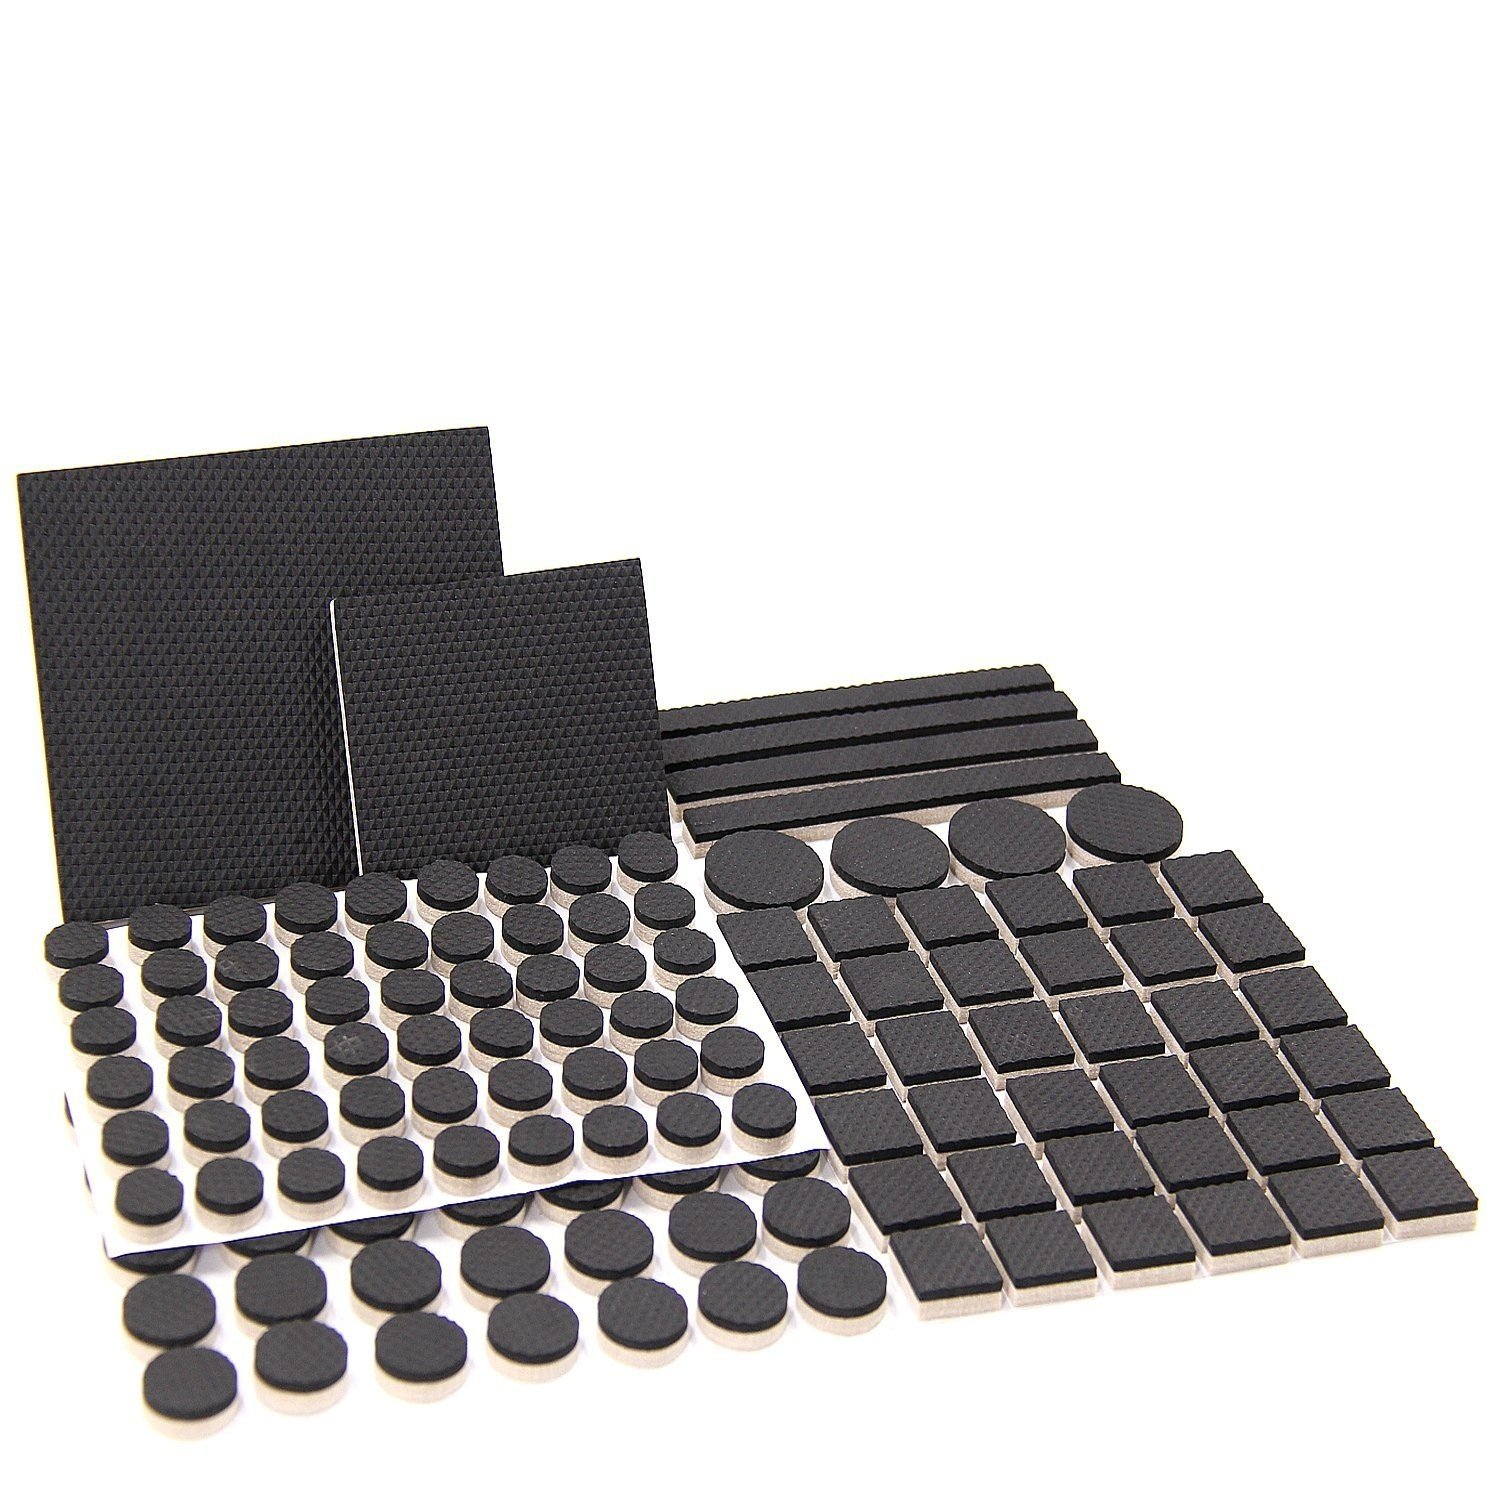 133 PCS Furniture Felt Pads Various Sizes Non-Slip Furniture Feet Protectors Chair Sliders for Hardwood Tiled Floor